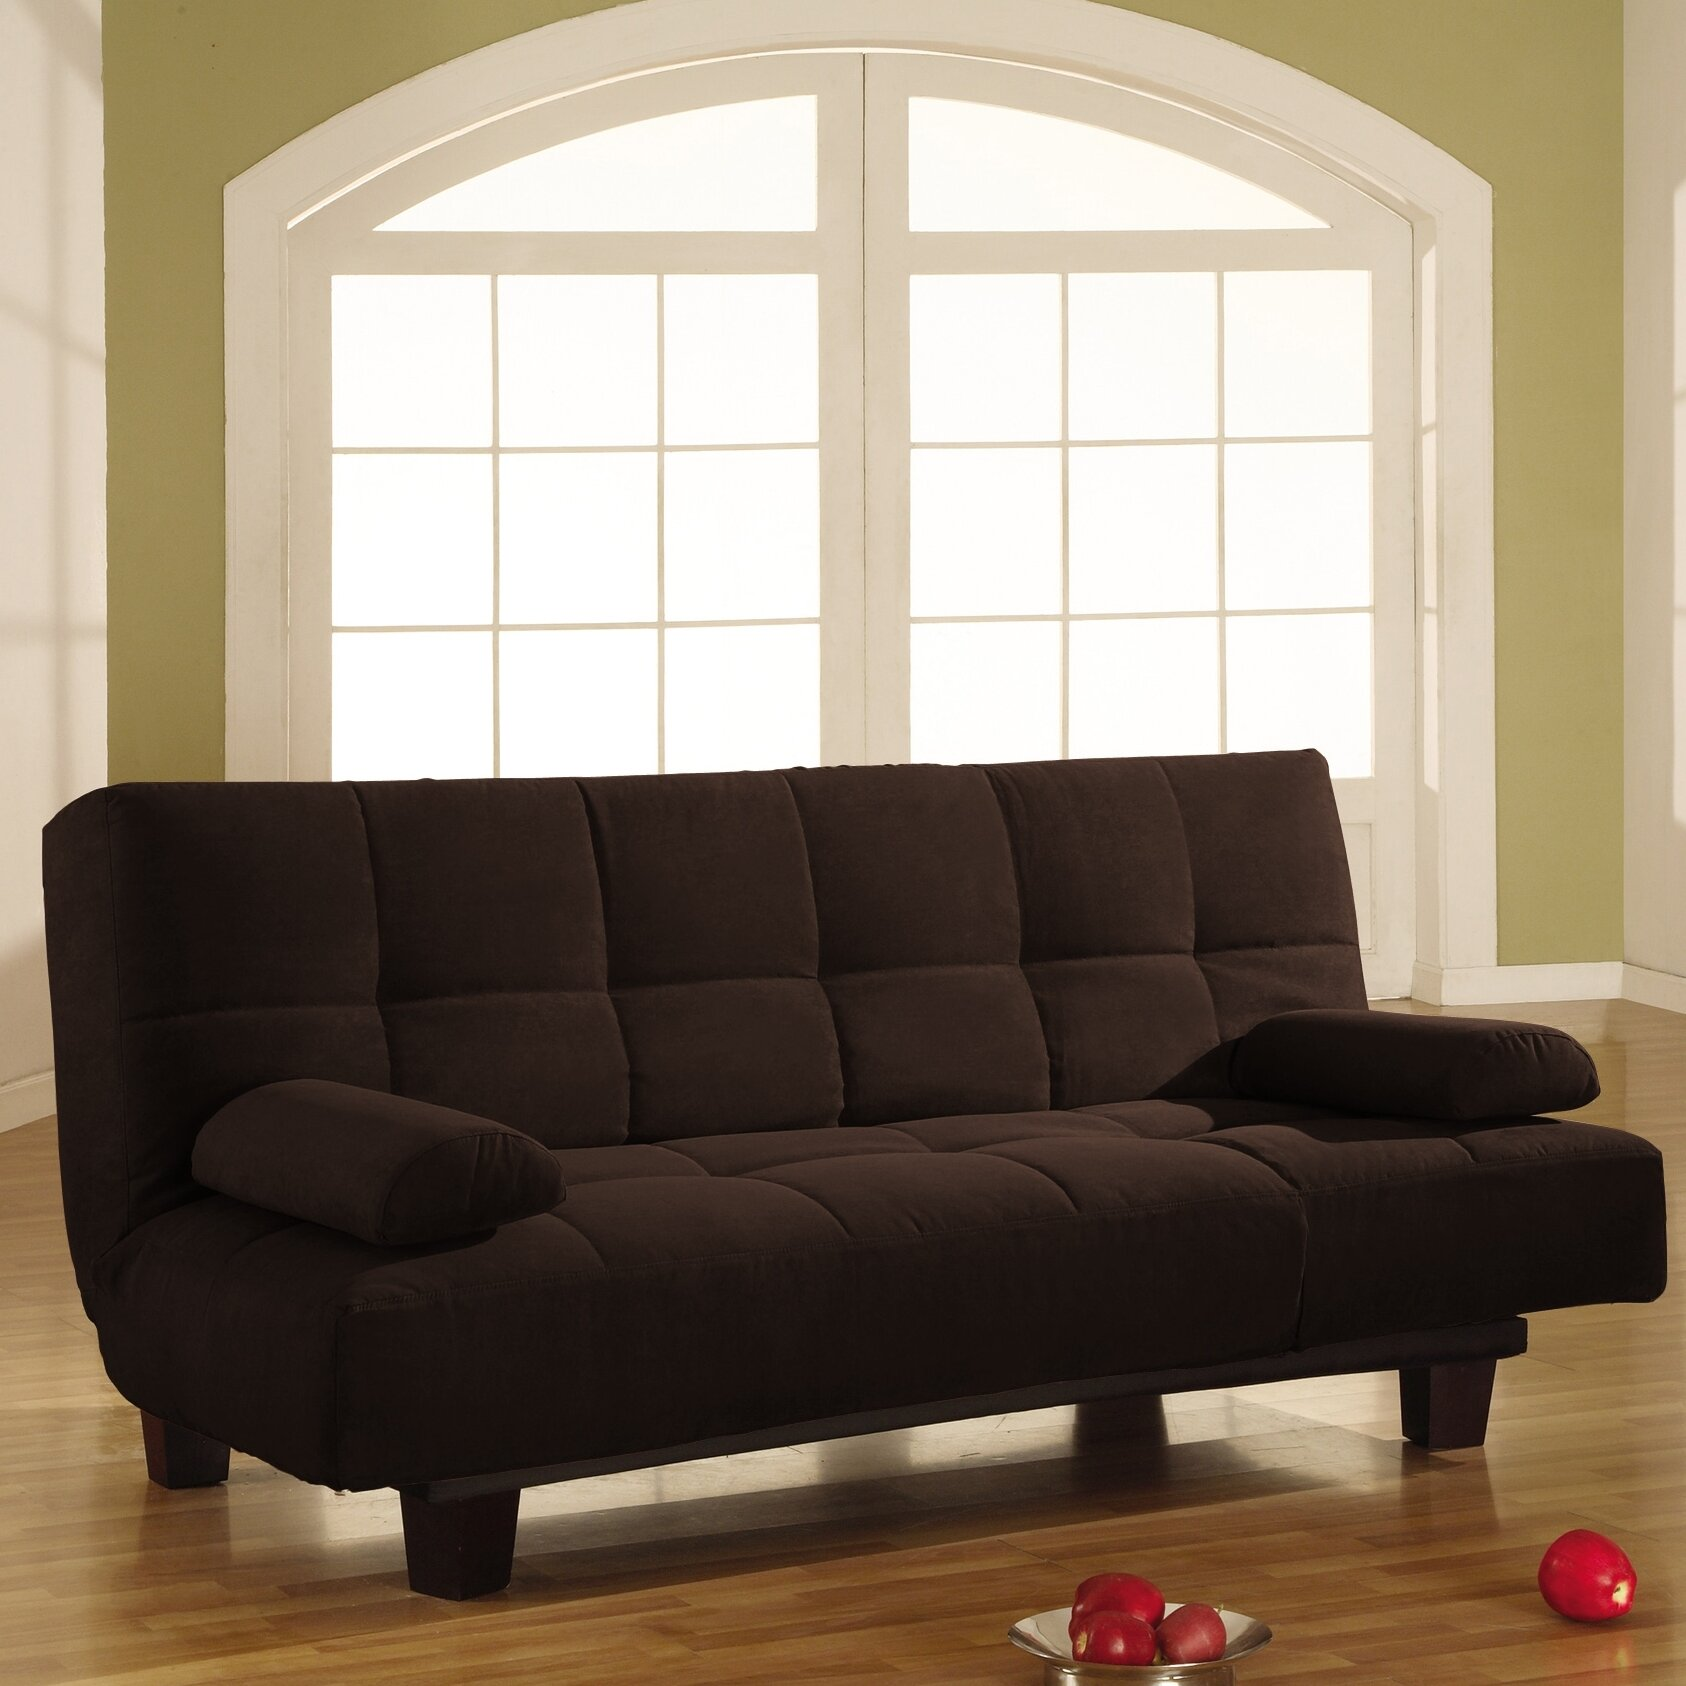 Convertible Ottoman Chair Costco: LifeStyle Solutions Serta Dream Sleeper Sofa & Reviews